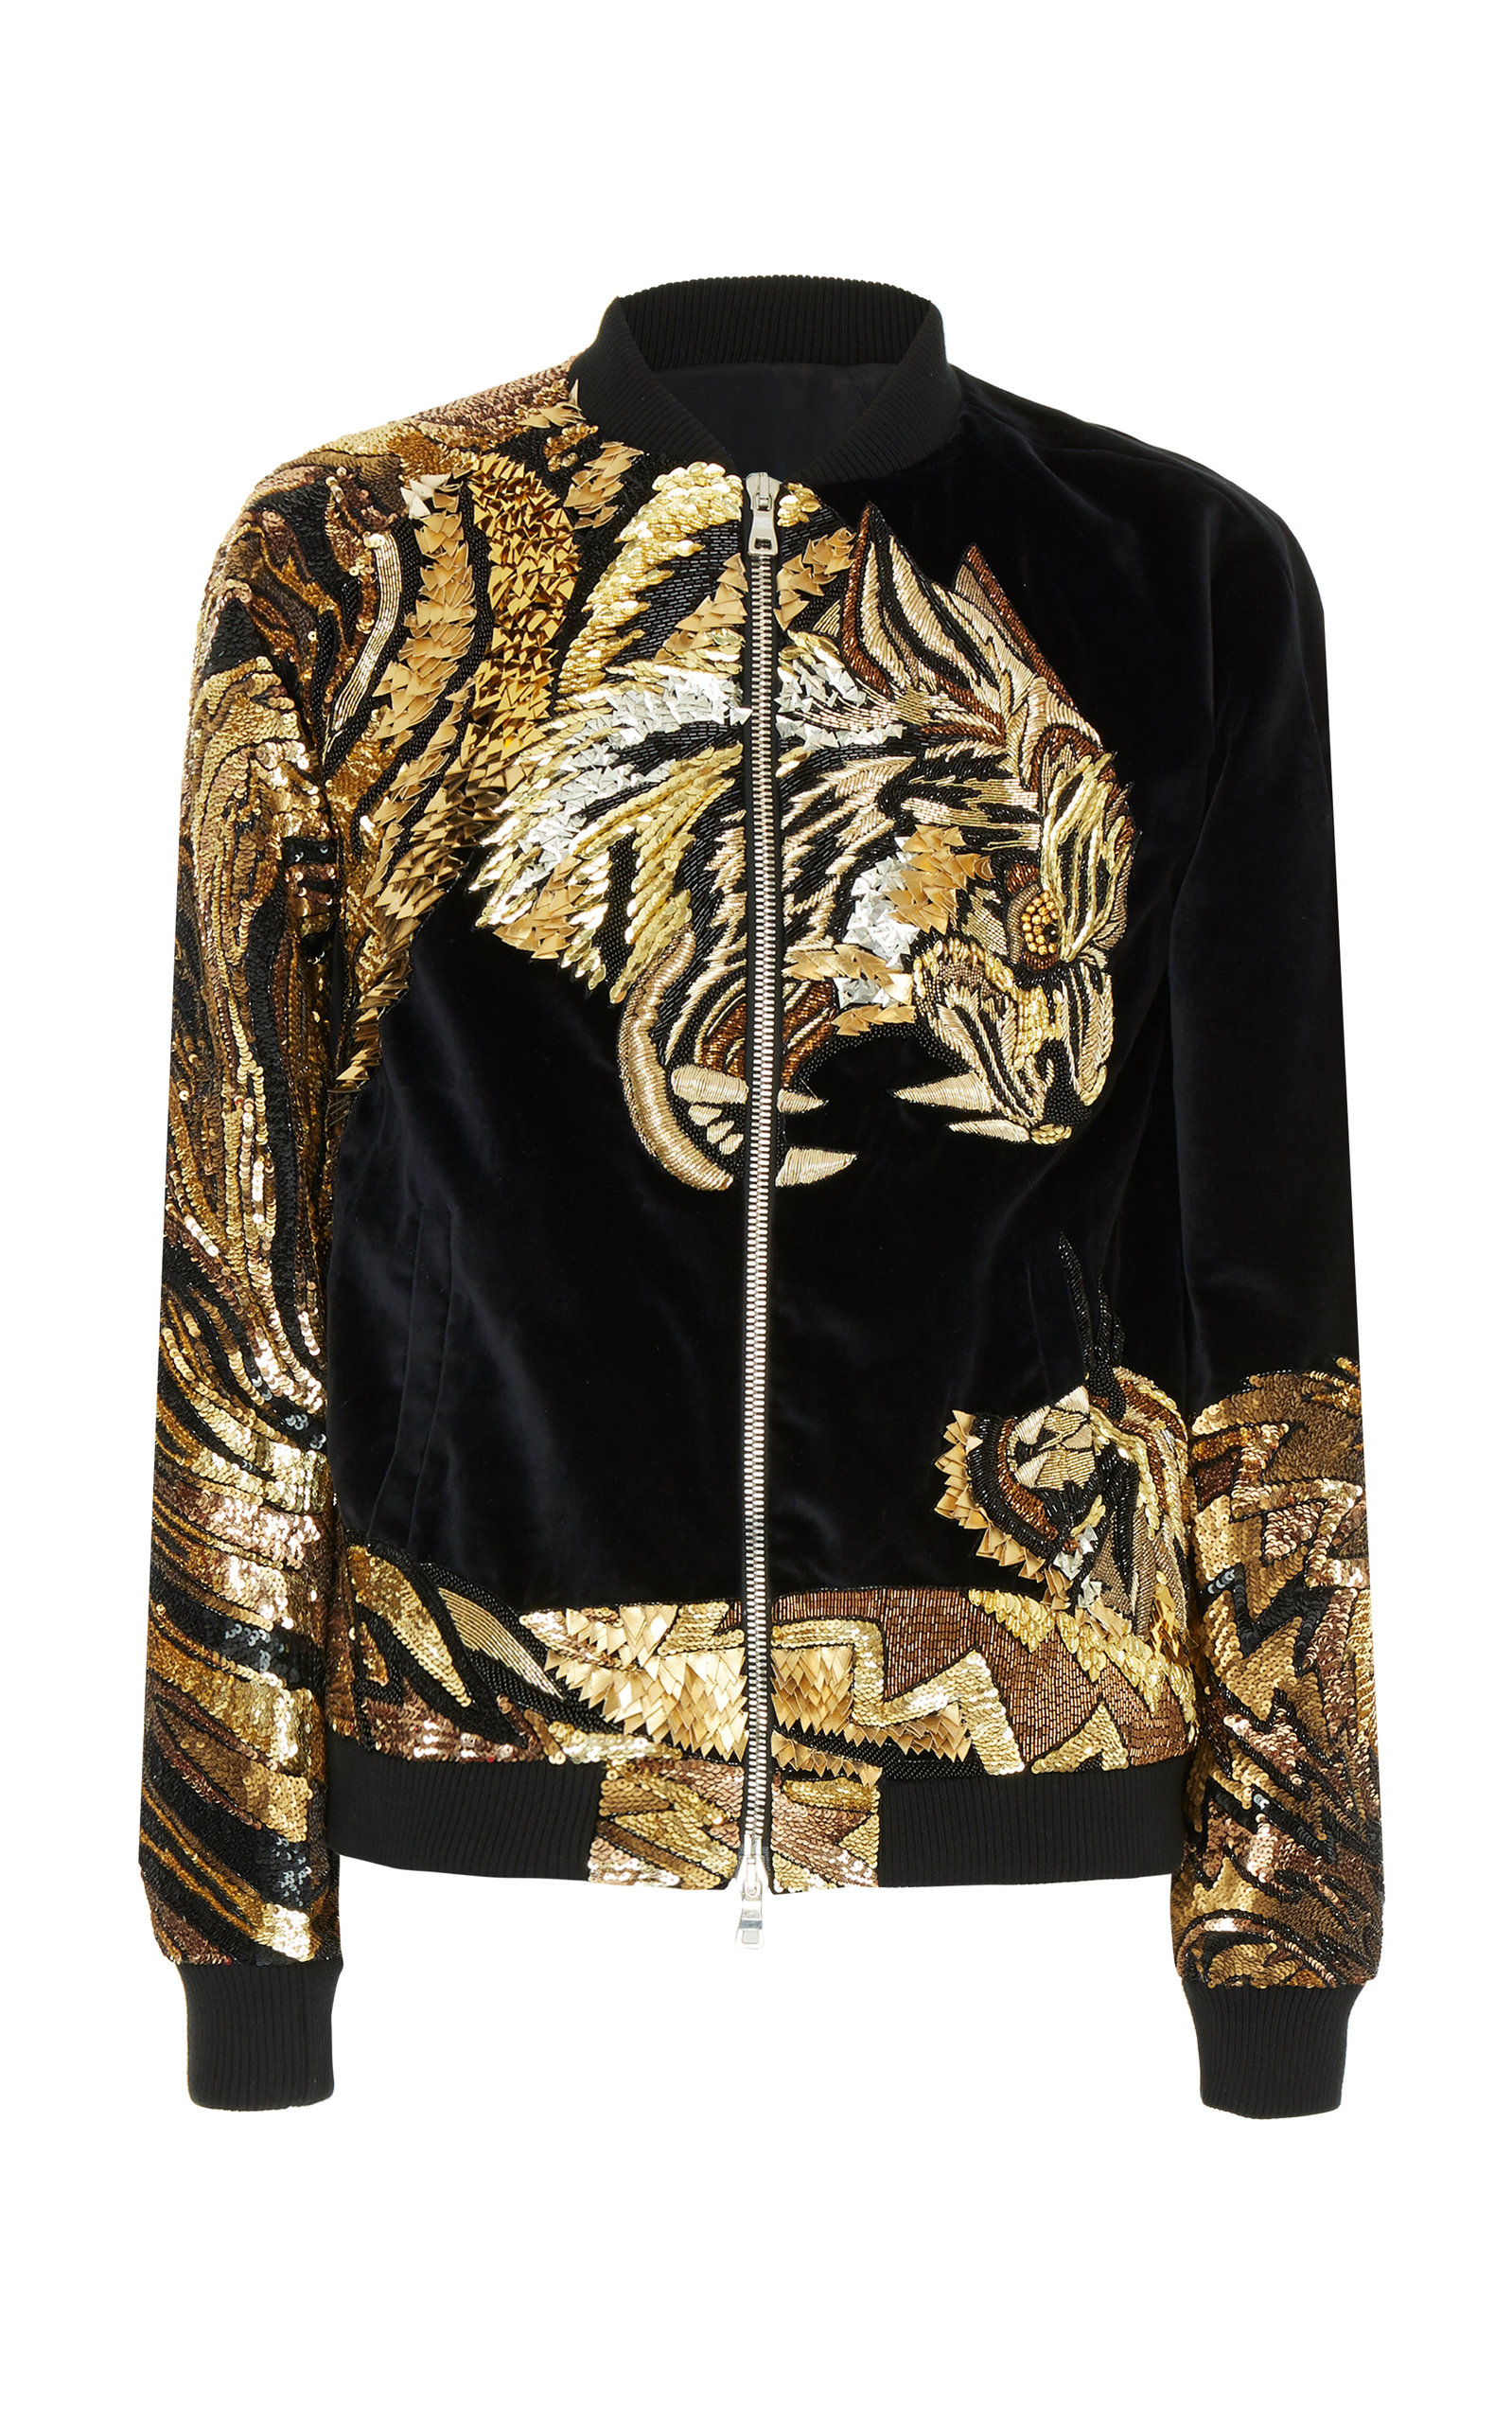 dace05511 Tiger Embroidered Bomber Jacket